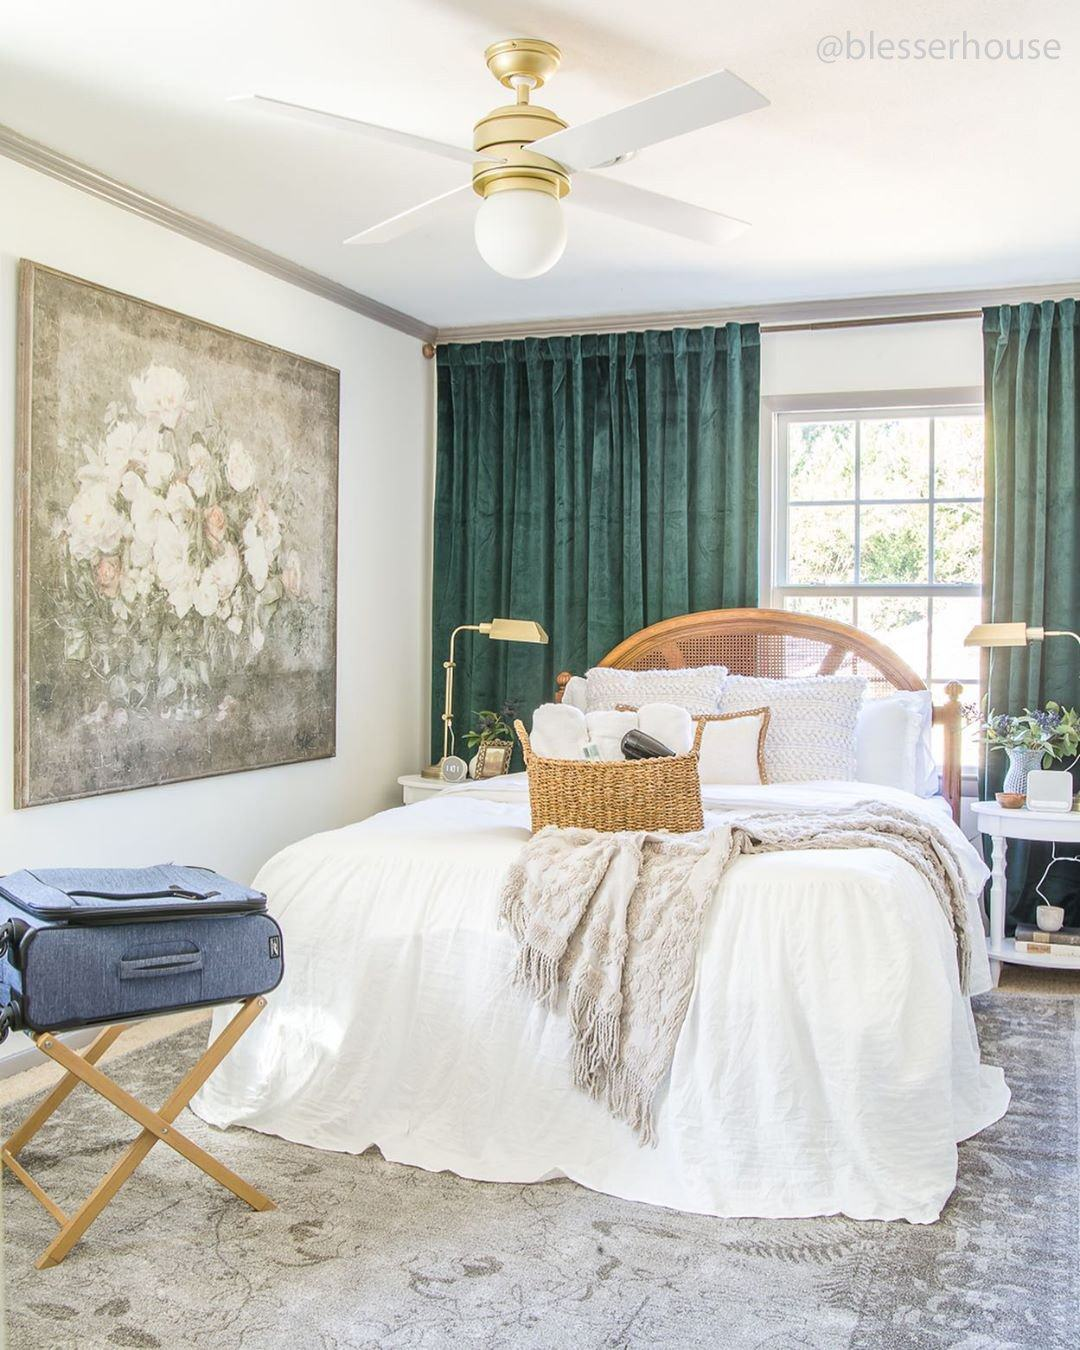 Four easy ways to prepare your guest bedroom for the holidays